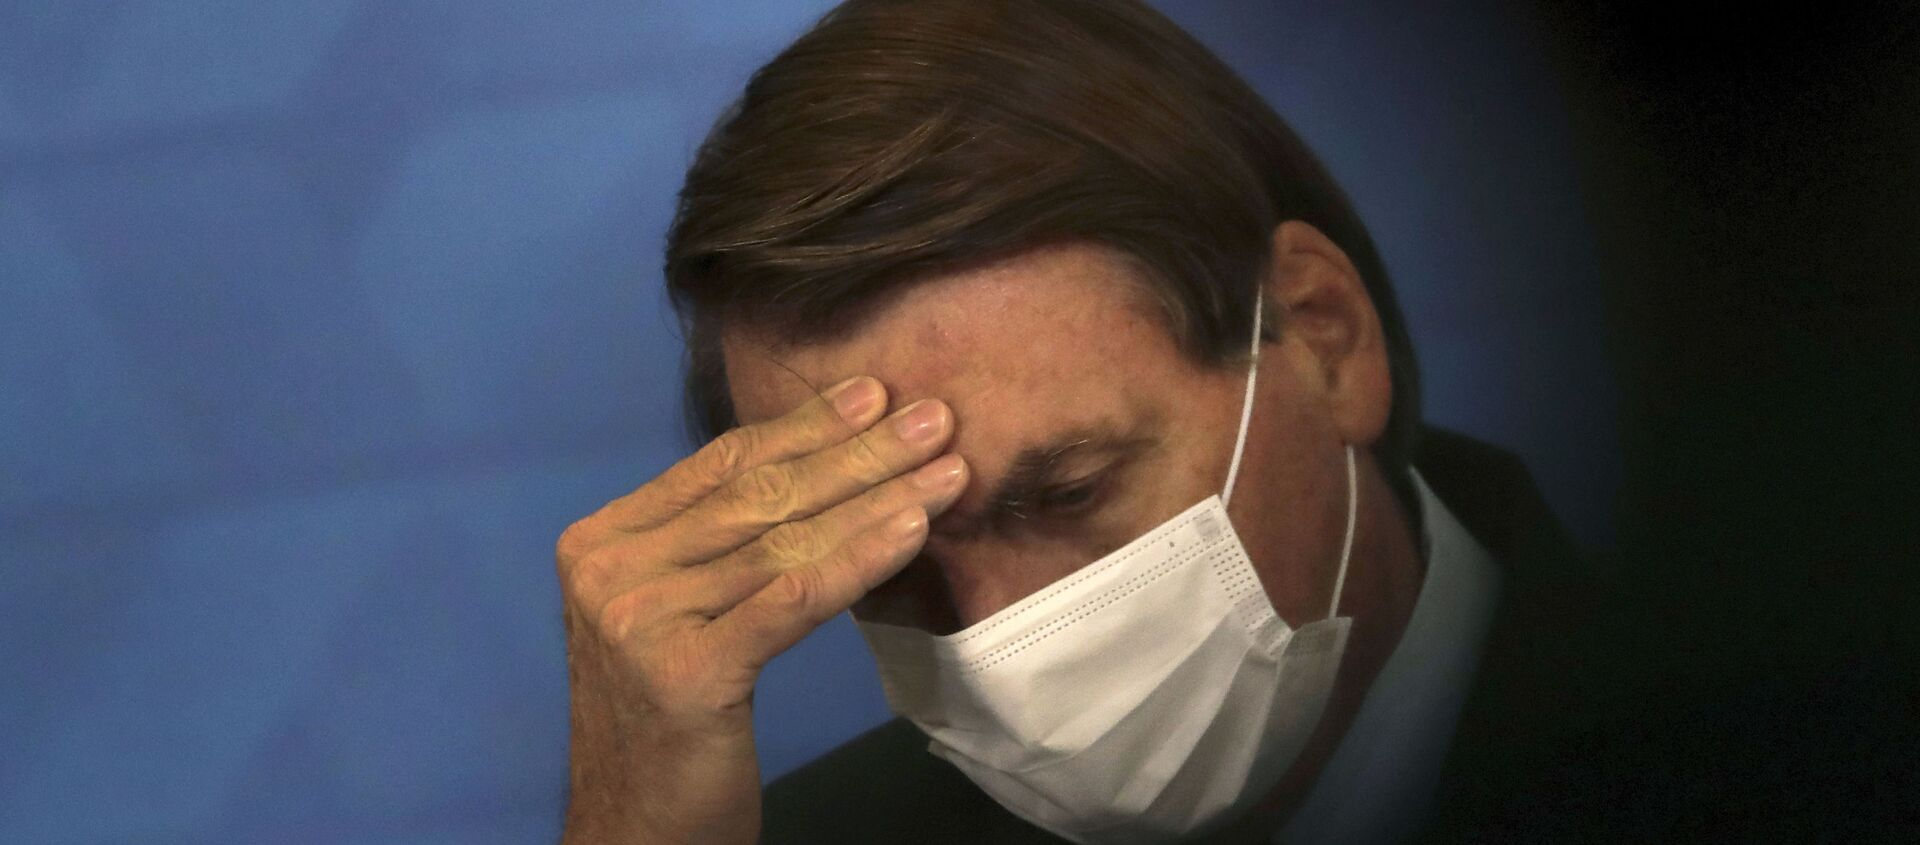 Brazil's President Jair Bolsonaro, wearing protective face mask, listens during a ceremony announcing economic measures to support philanthropic hospitals and help them treat COVID-19 patients, at the Planalto Presidential Palace, in Brasilia, Brazil, Thursday, March 25, 2021. - Sputnik International, 1920, 02.07.2021